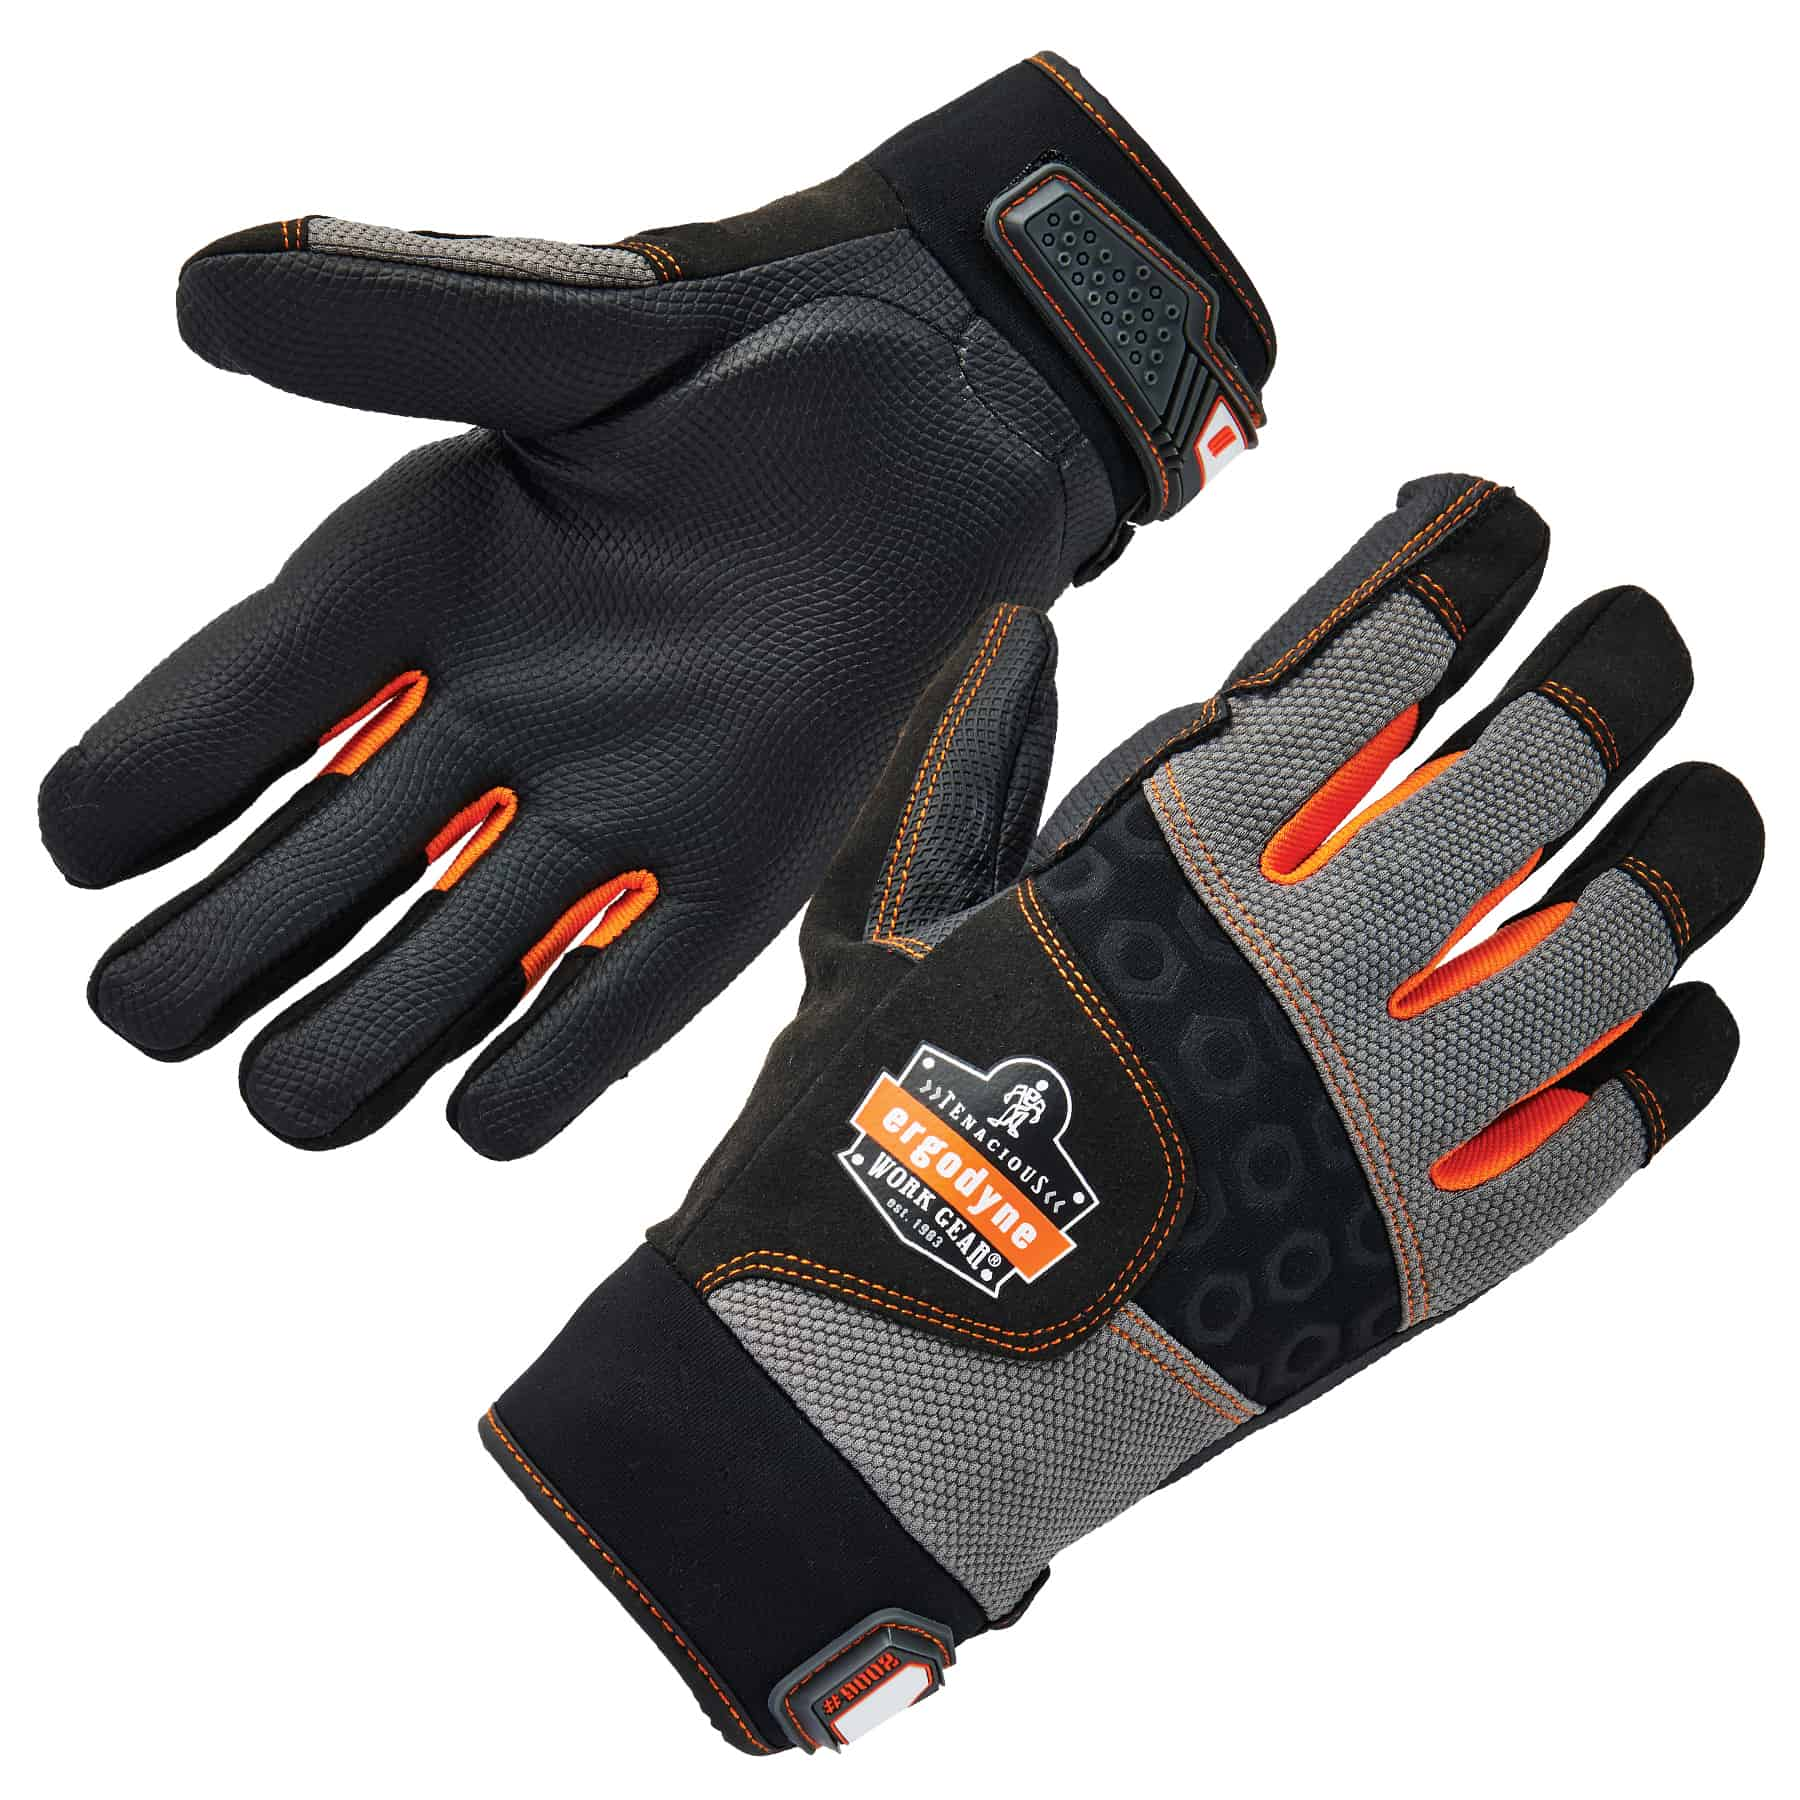 Ergodyne 9002  Anti-Vibration Work  Glove